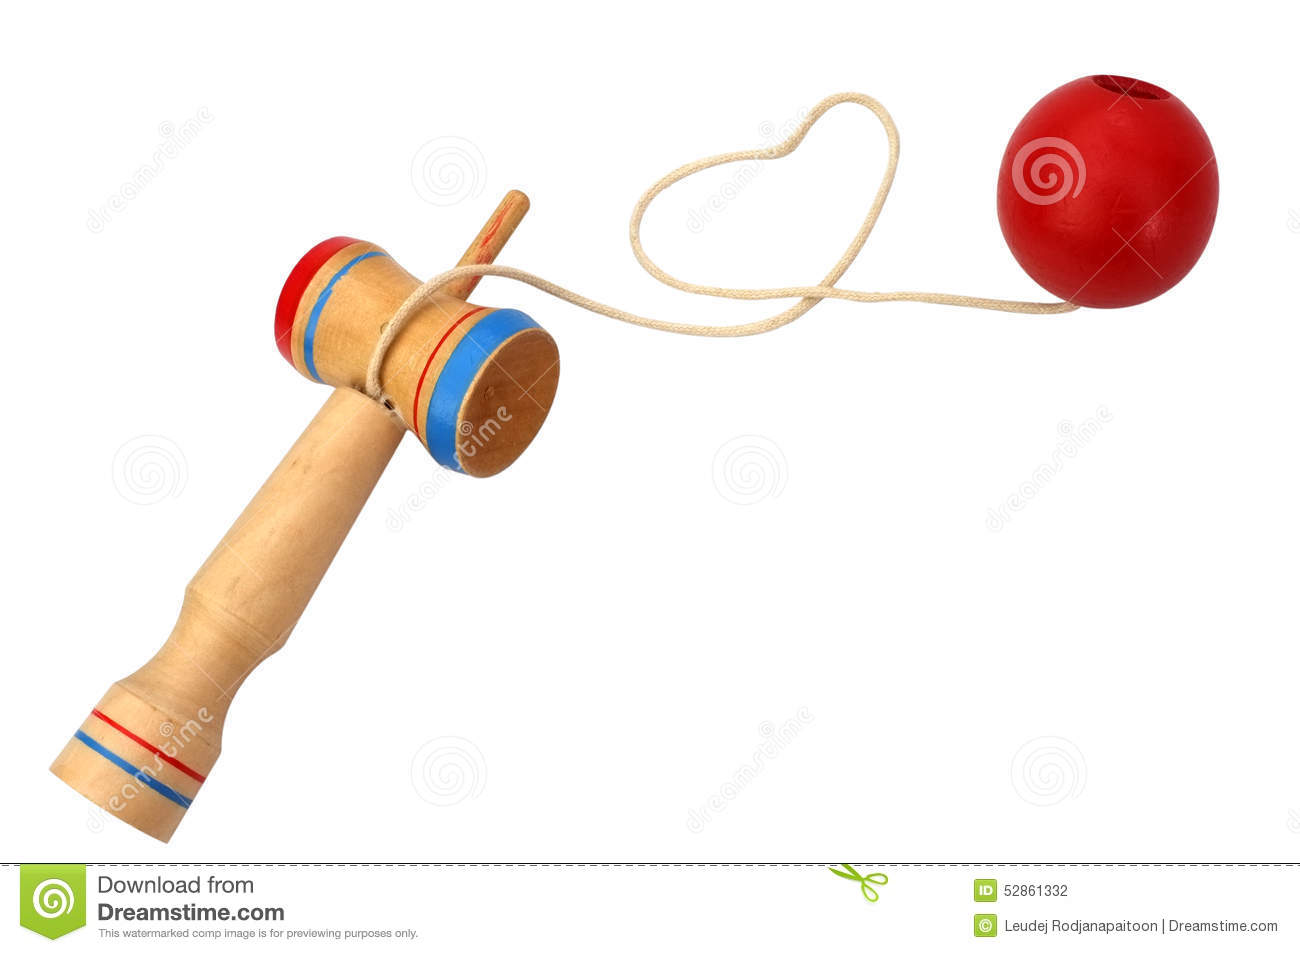 kendama, a traditional japanese toy consisting of a sword